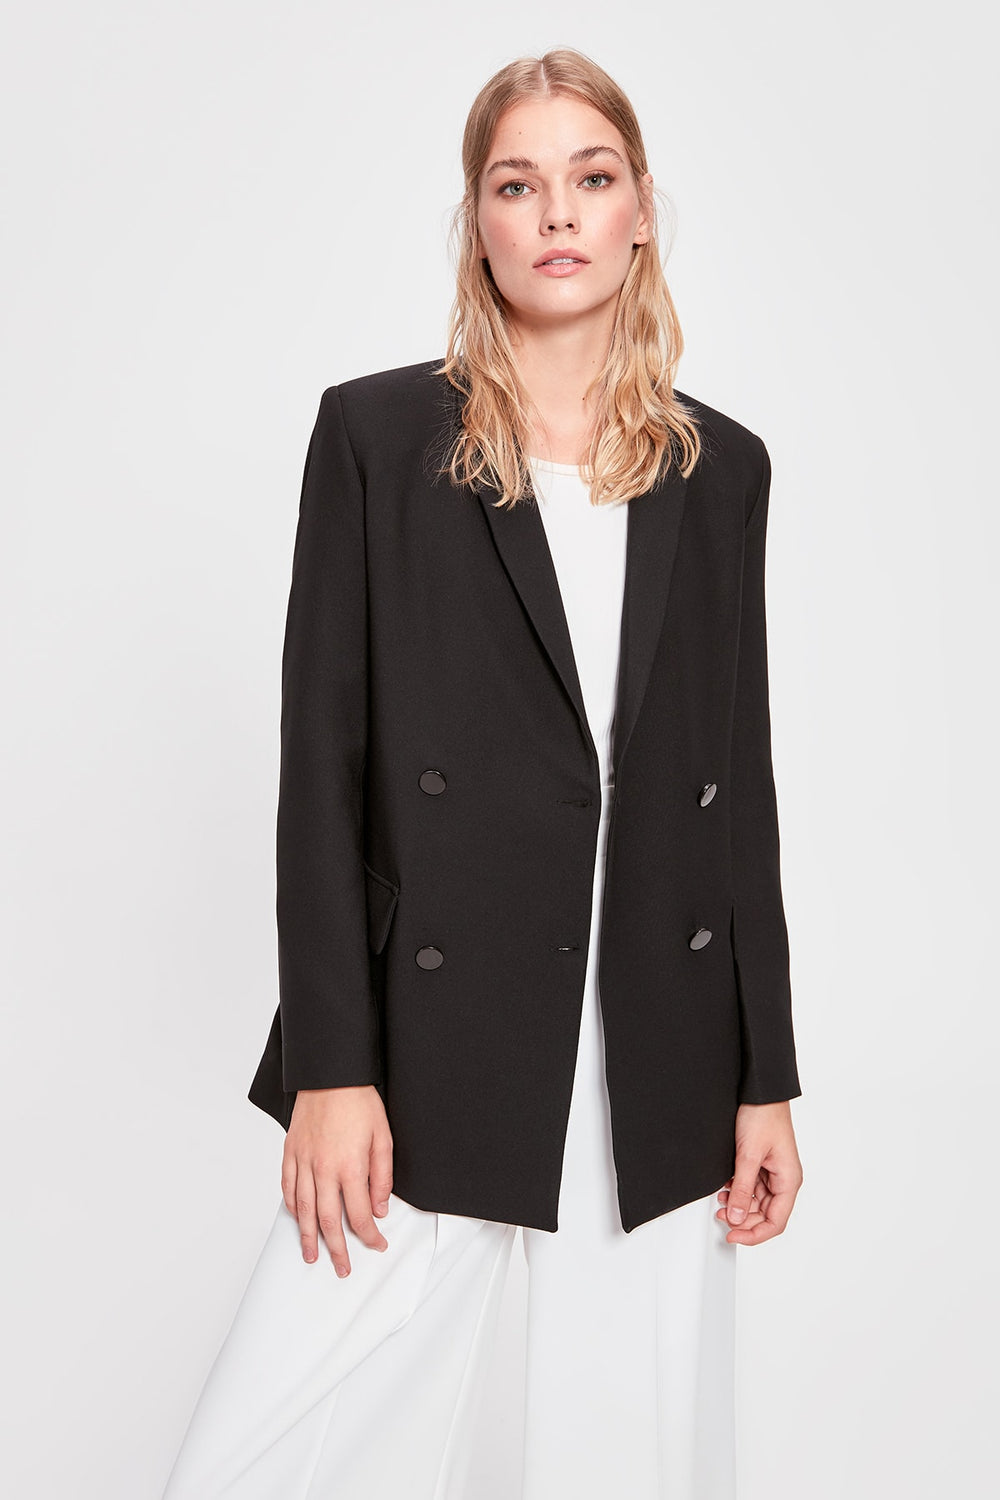 Miss Zut Miss Zut Black Button Detail Jacket Miss Zut &CO